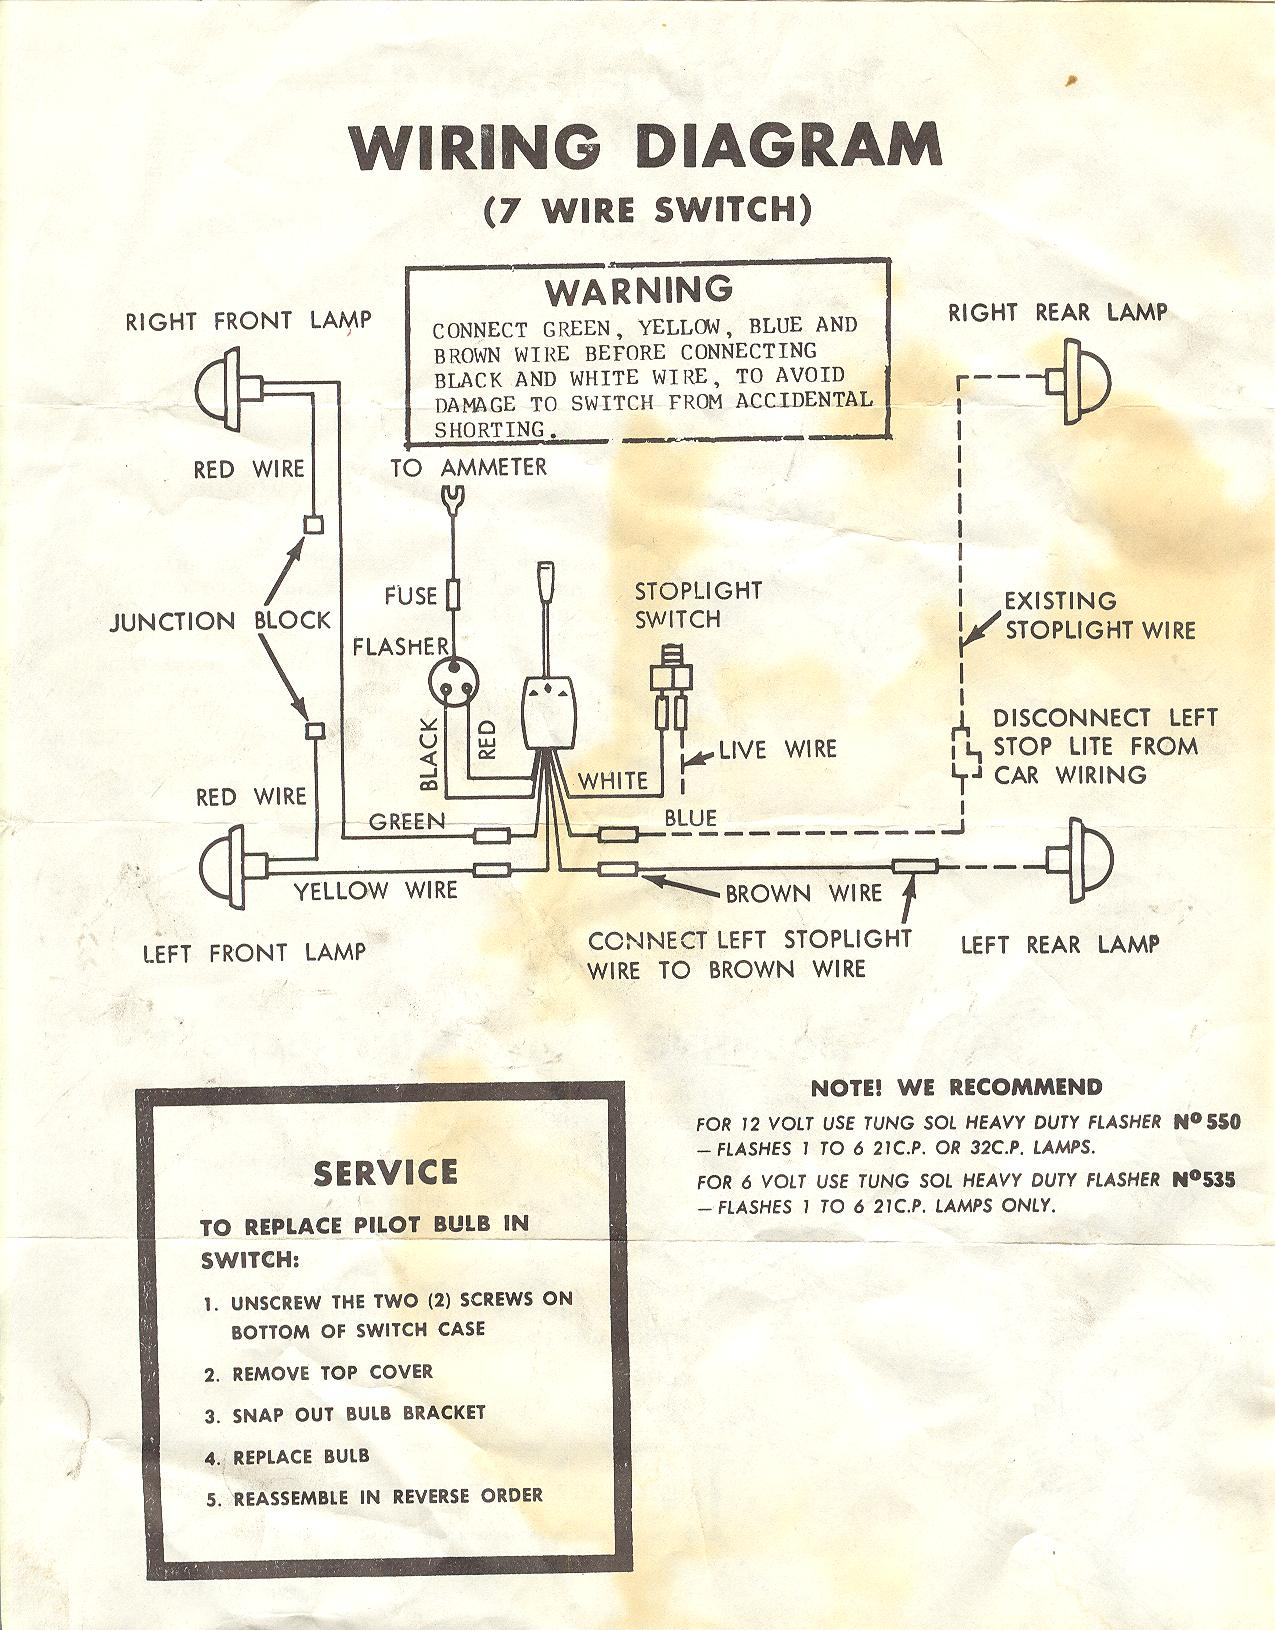 Stat 900 Wiring Diagram On How To Wire A Light Switch Wiring – Signal Stat Wiring Diagram